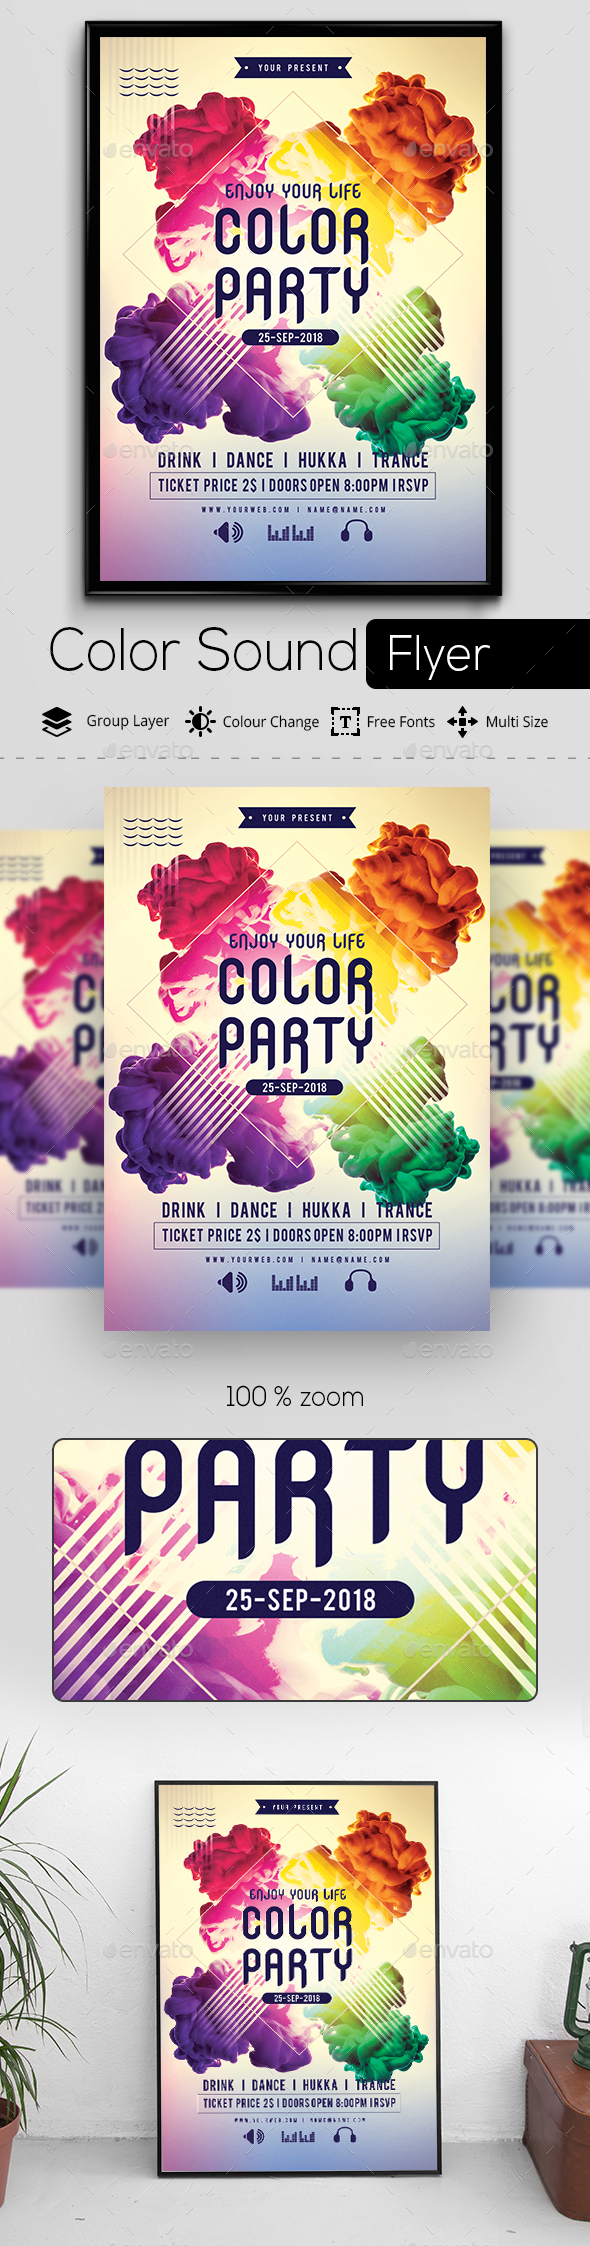 Color Sound Flyer - Clubs & Parties Events